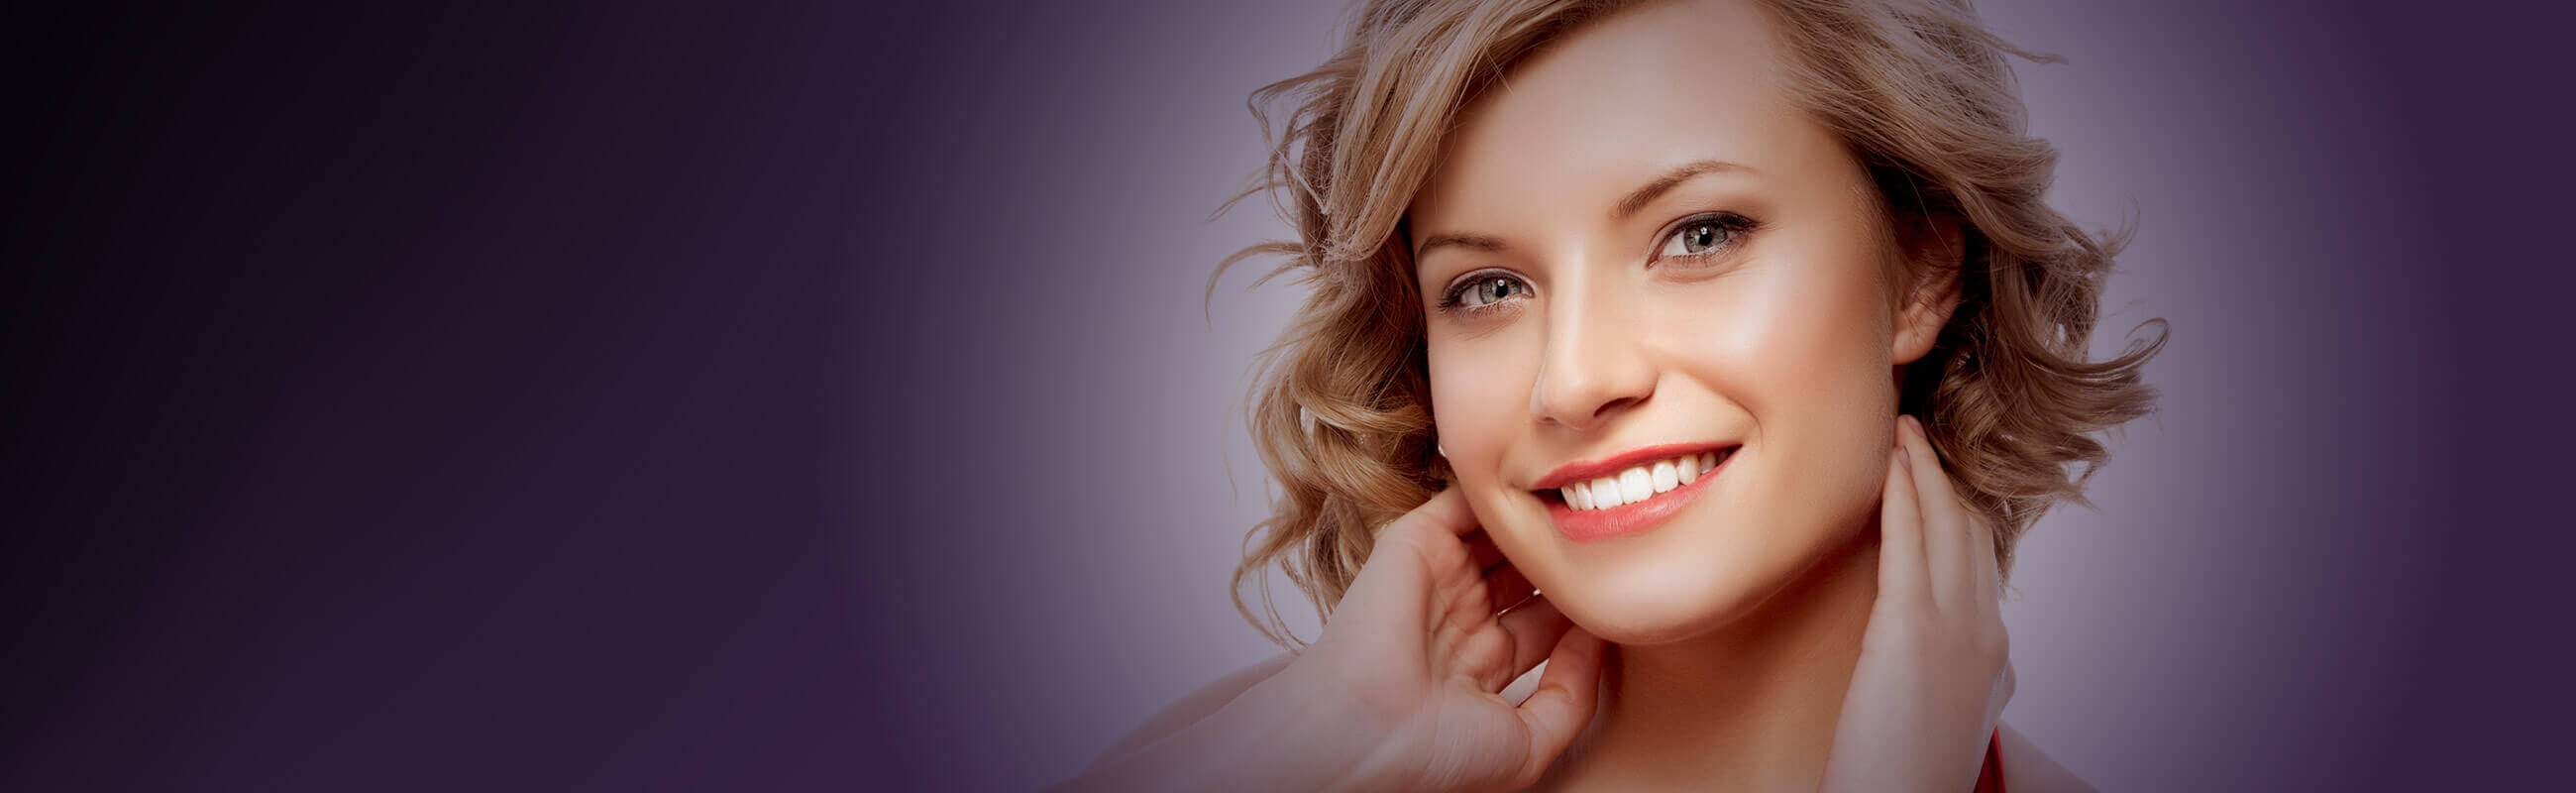 Facial Aesthetics Hornchurch, Essex